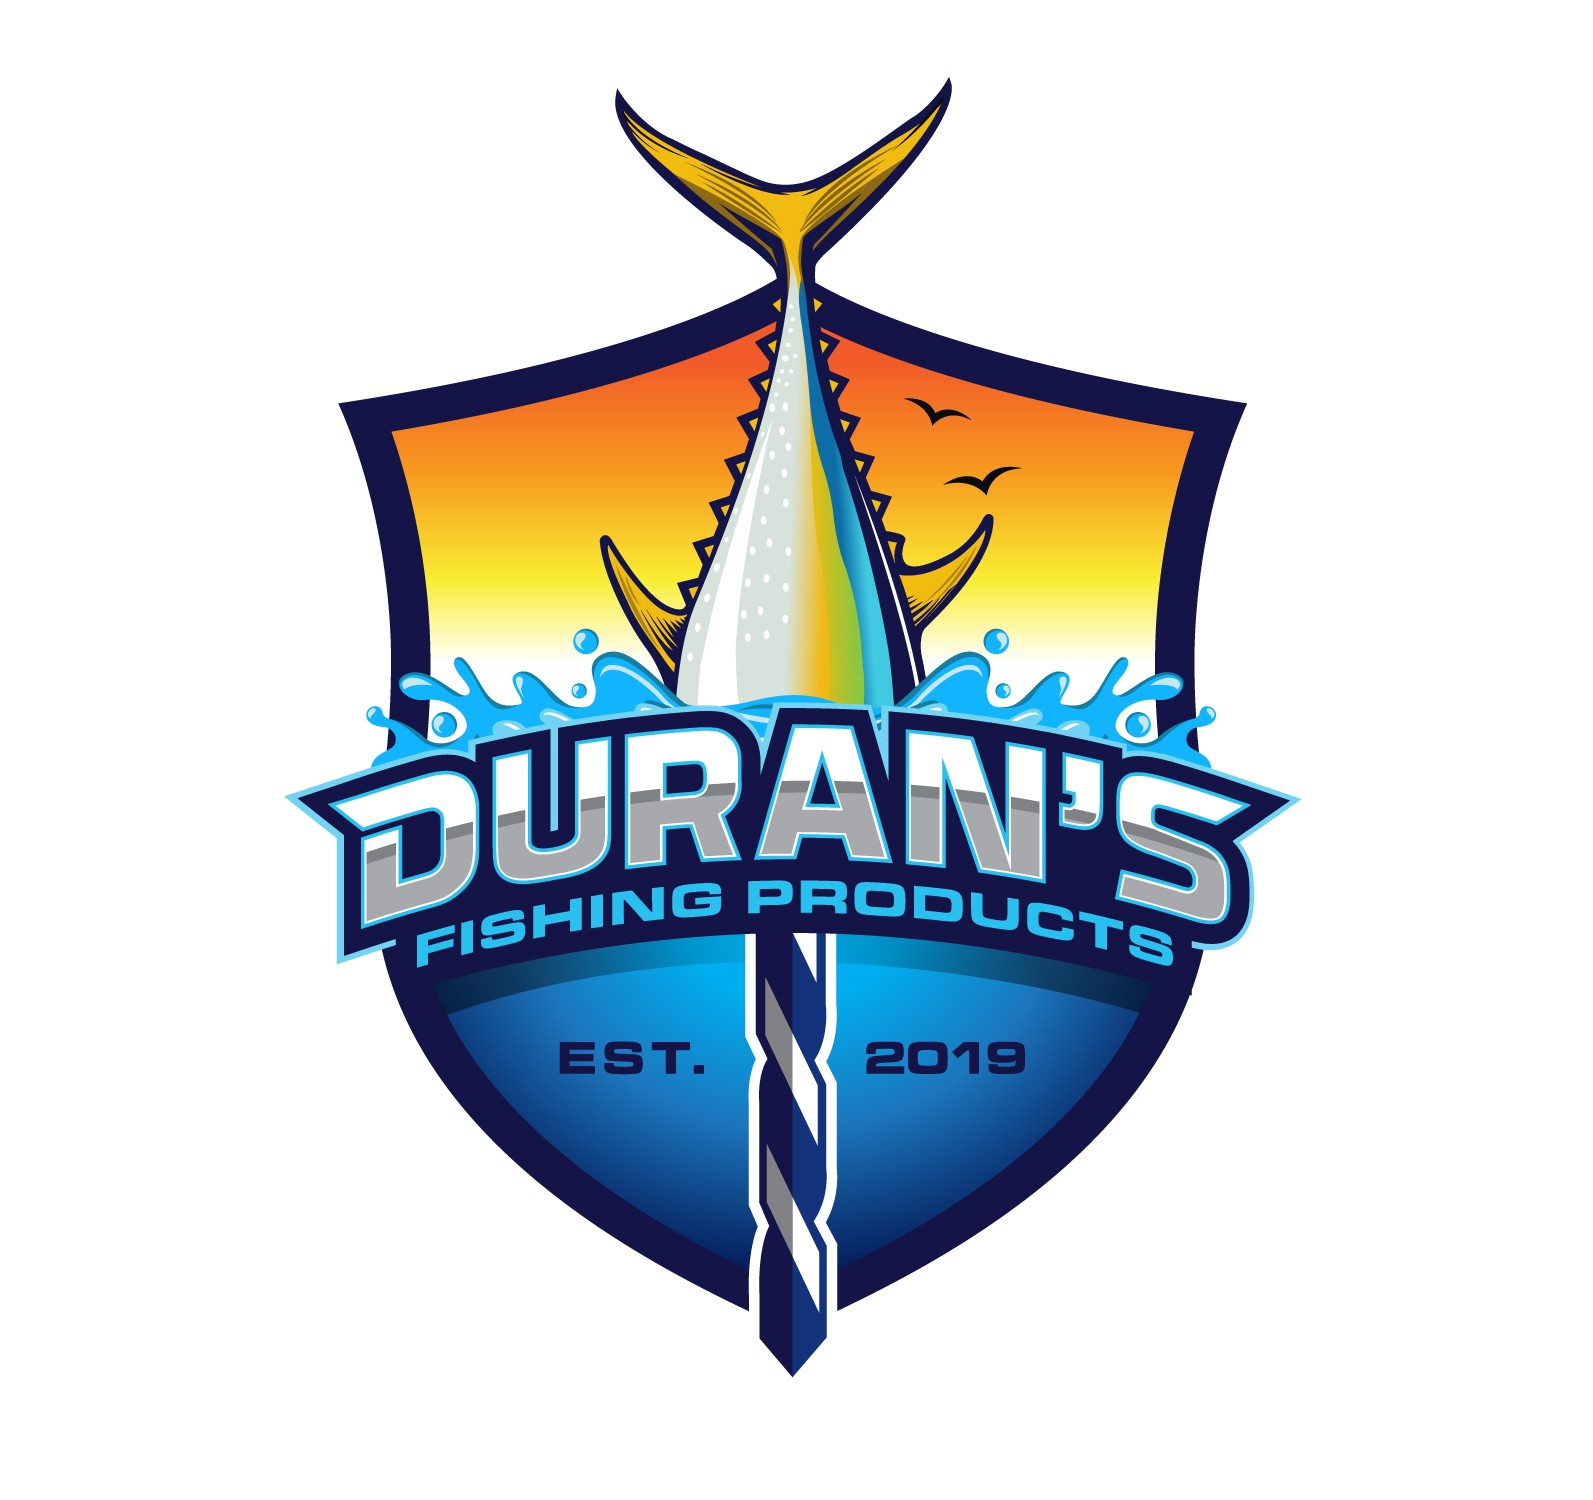 Fish need a logo too!! Duran's Fishing Products